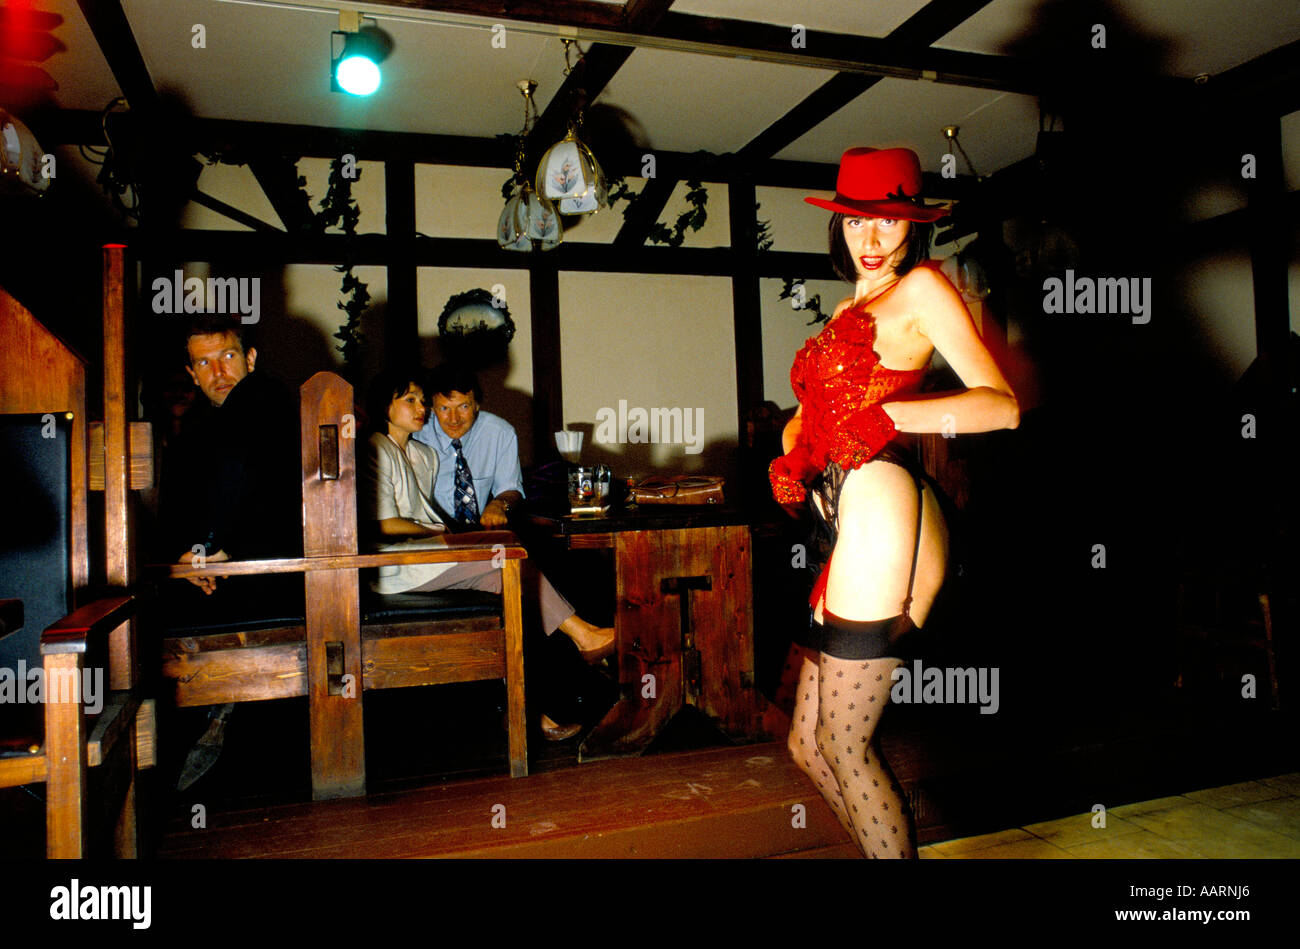 Strip clubs in ekaterinburg russia